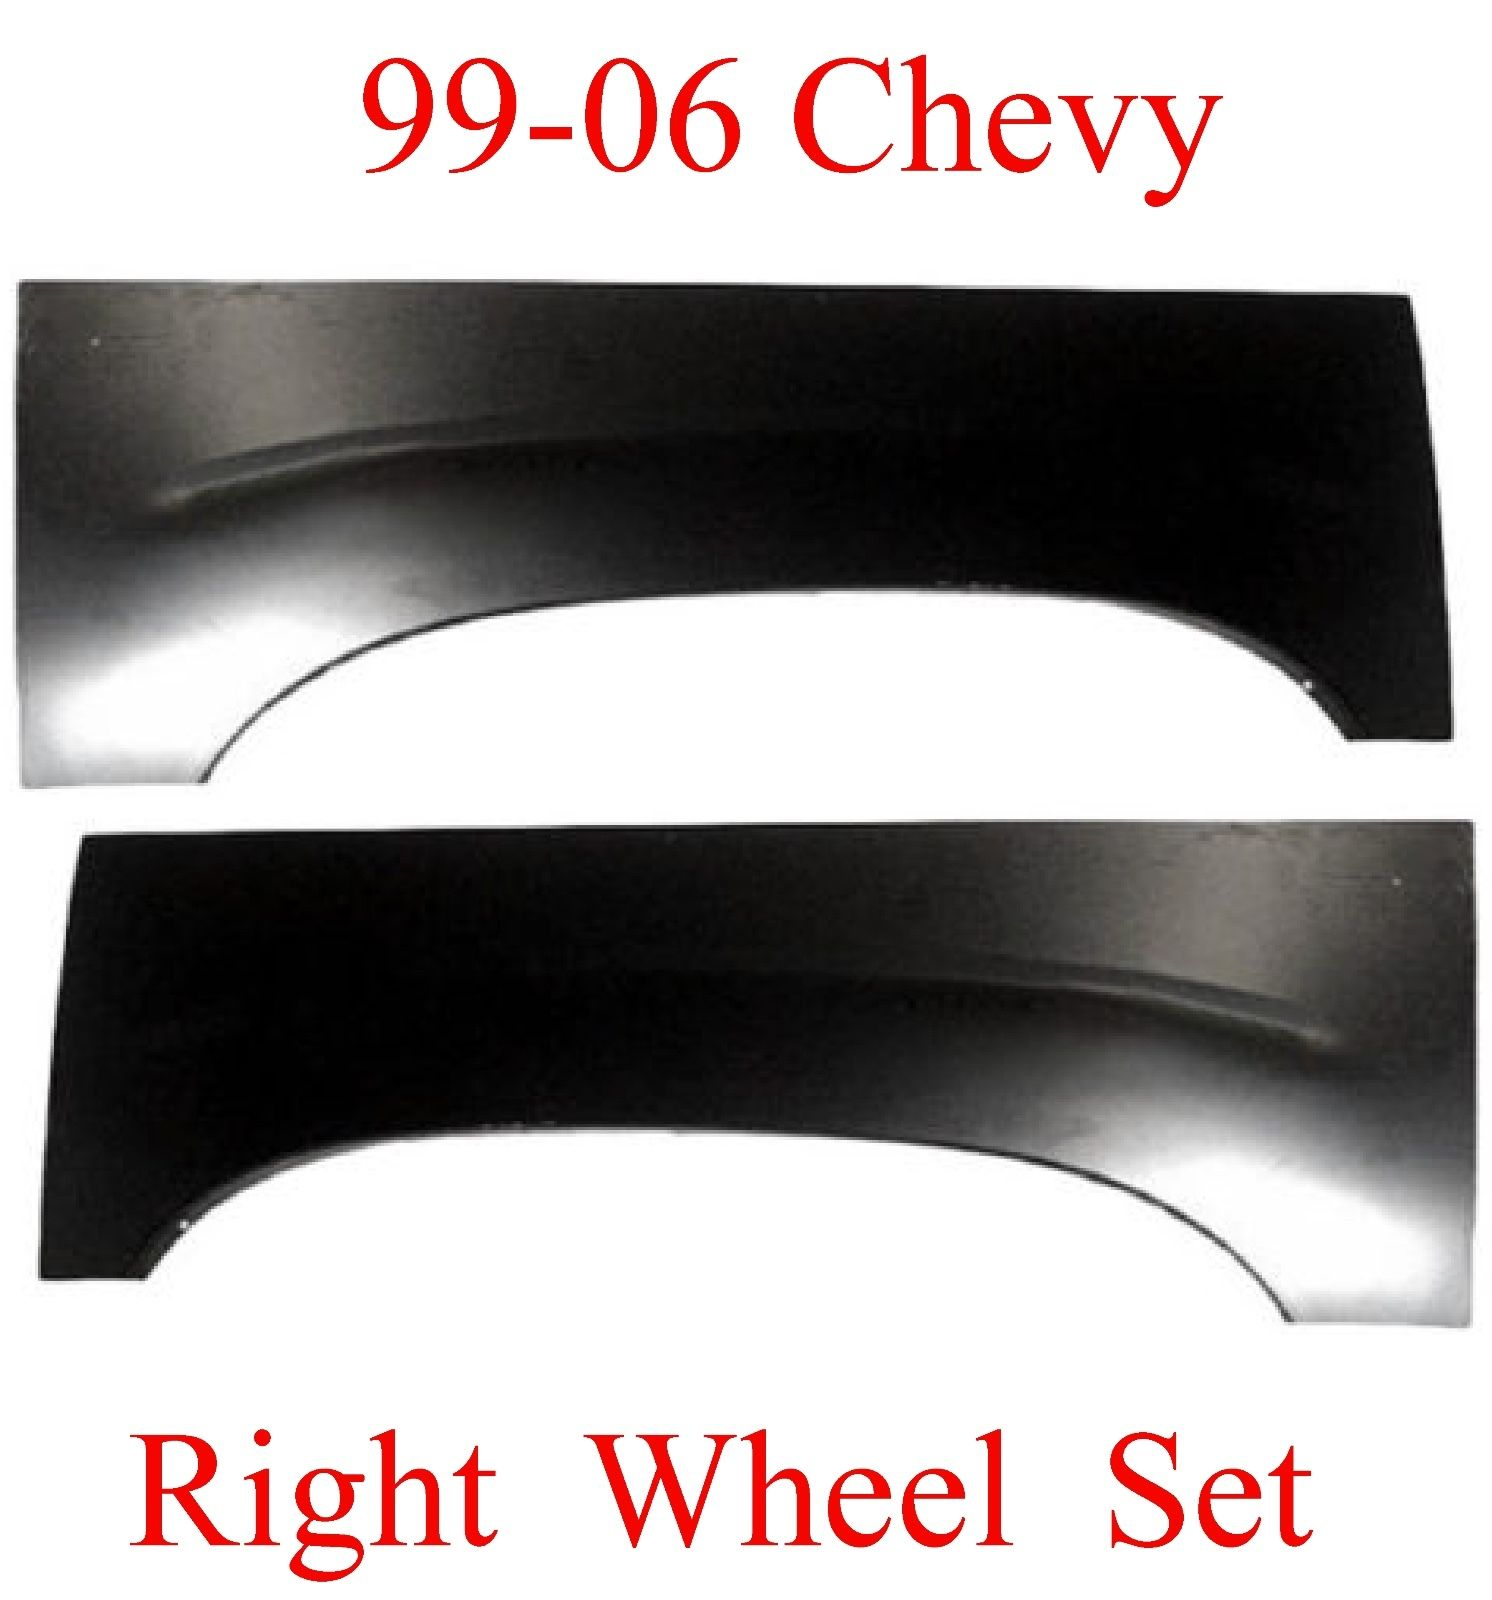 99-06 Chevy GMC Upper Arch Set